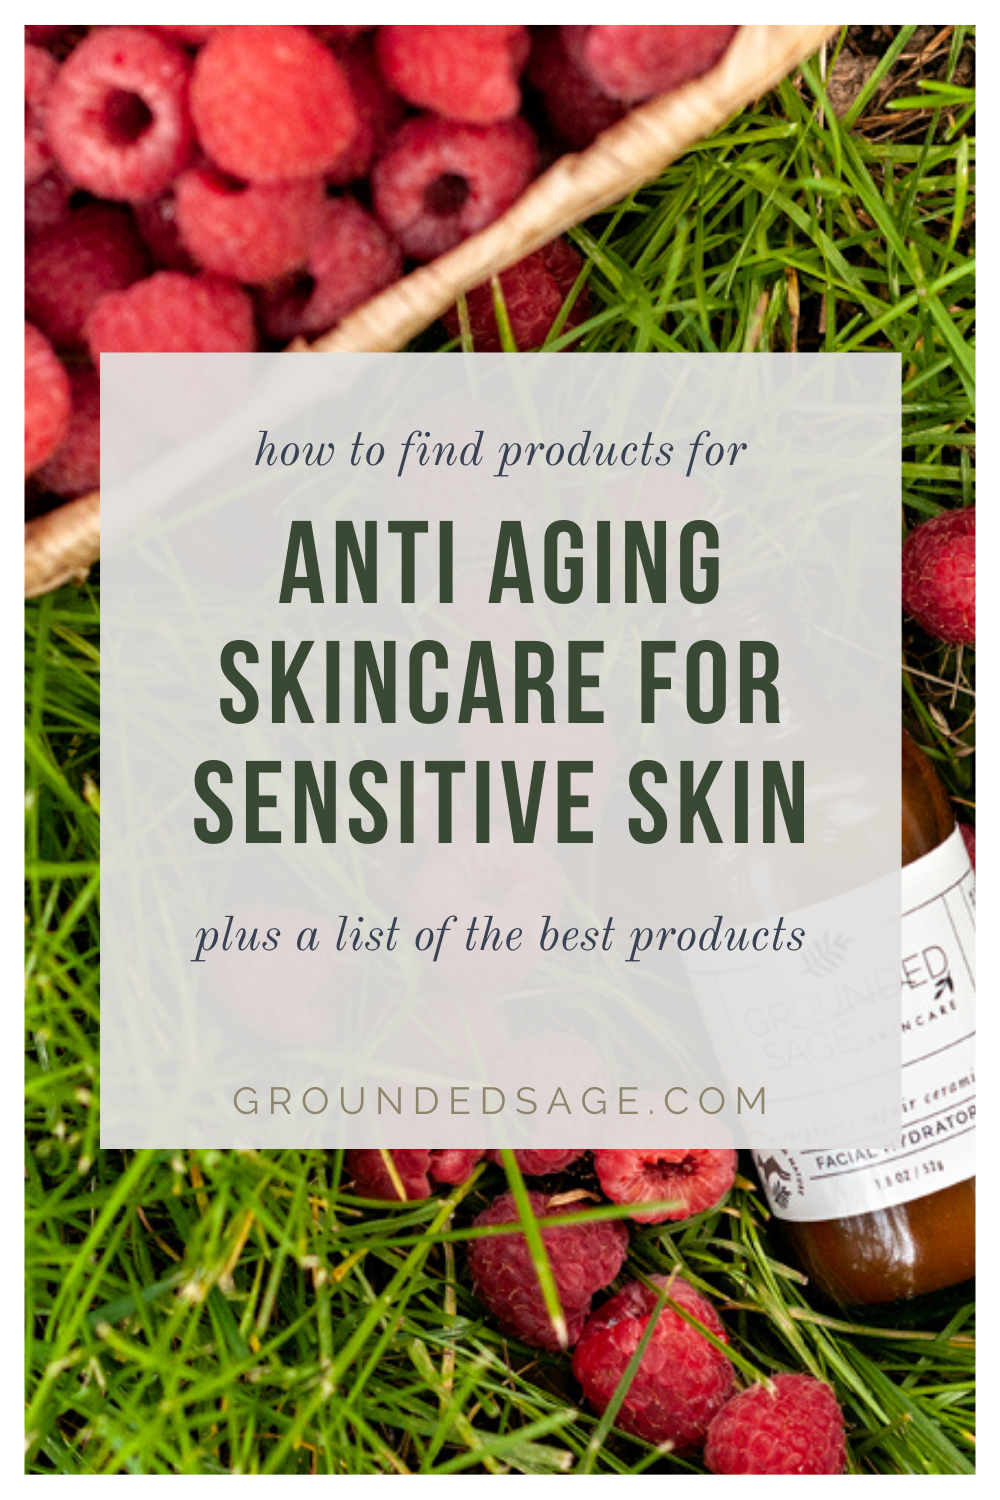 How to find anti aging skin care products for sensitive skin. Vegan beauty advice. Vegan products to try. Cruelty free skincare tips for healthy face routines